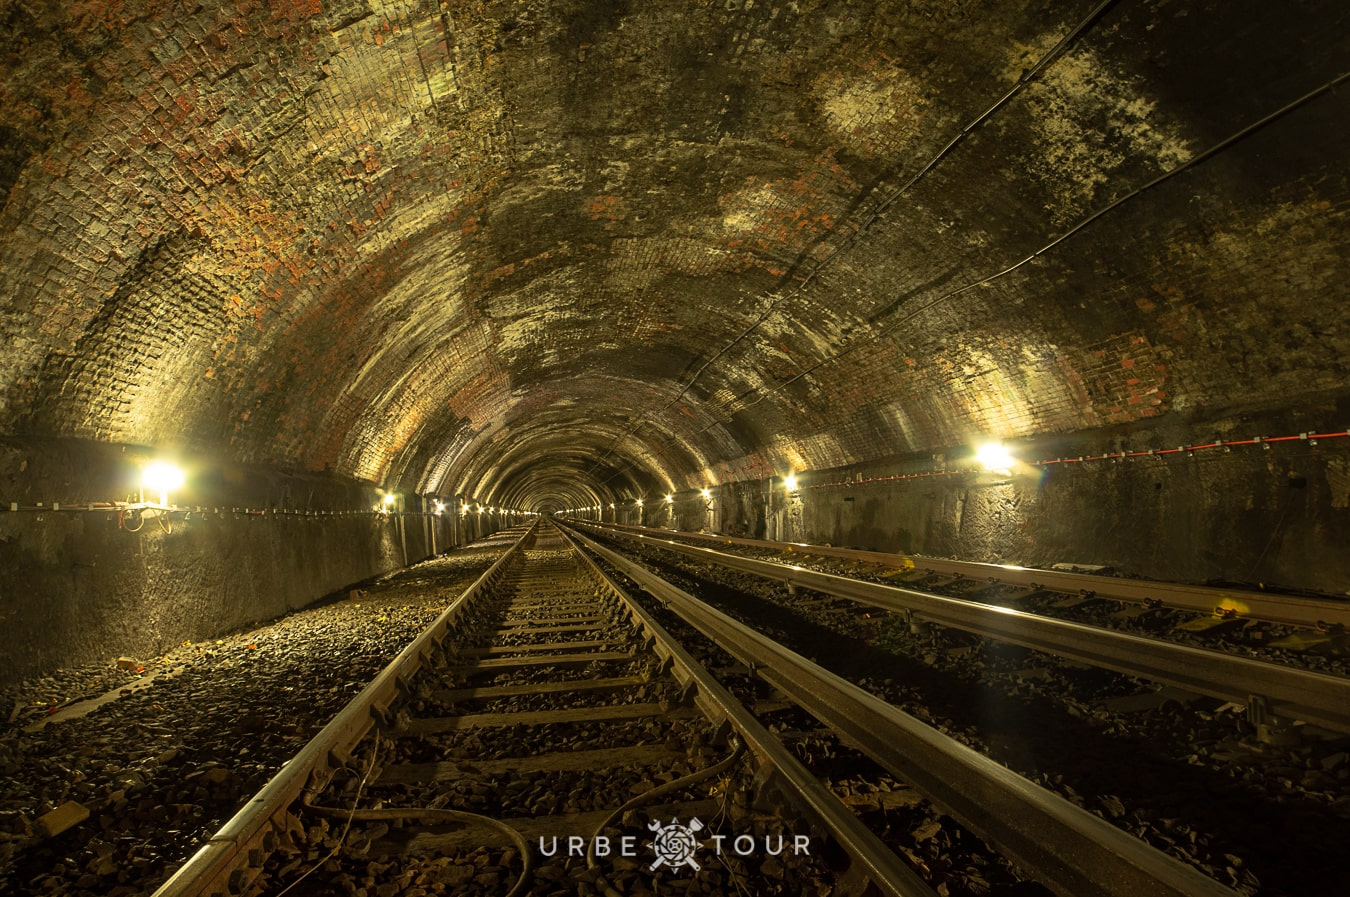 historycal tunnel of liverpool metro